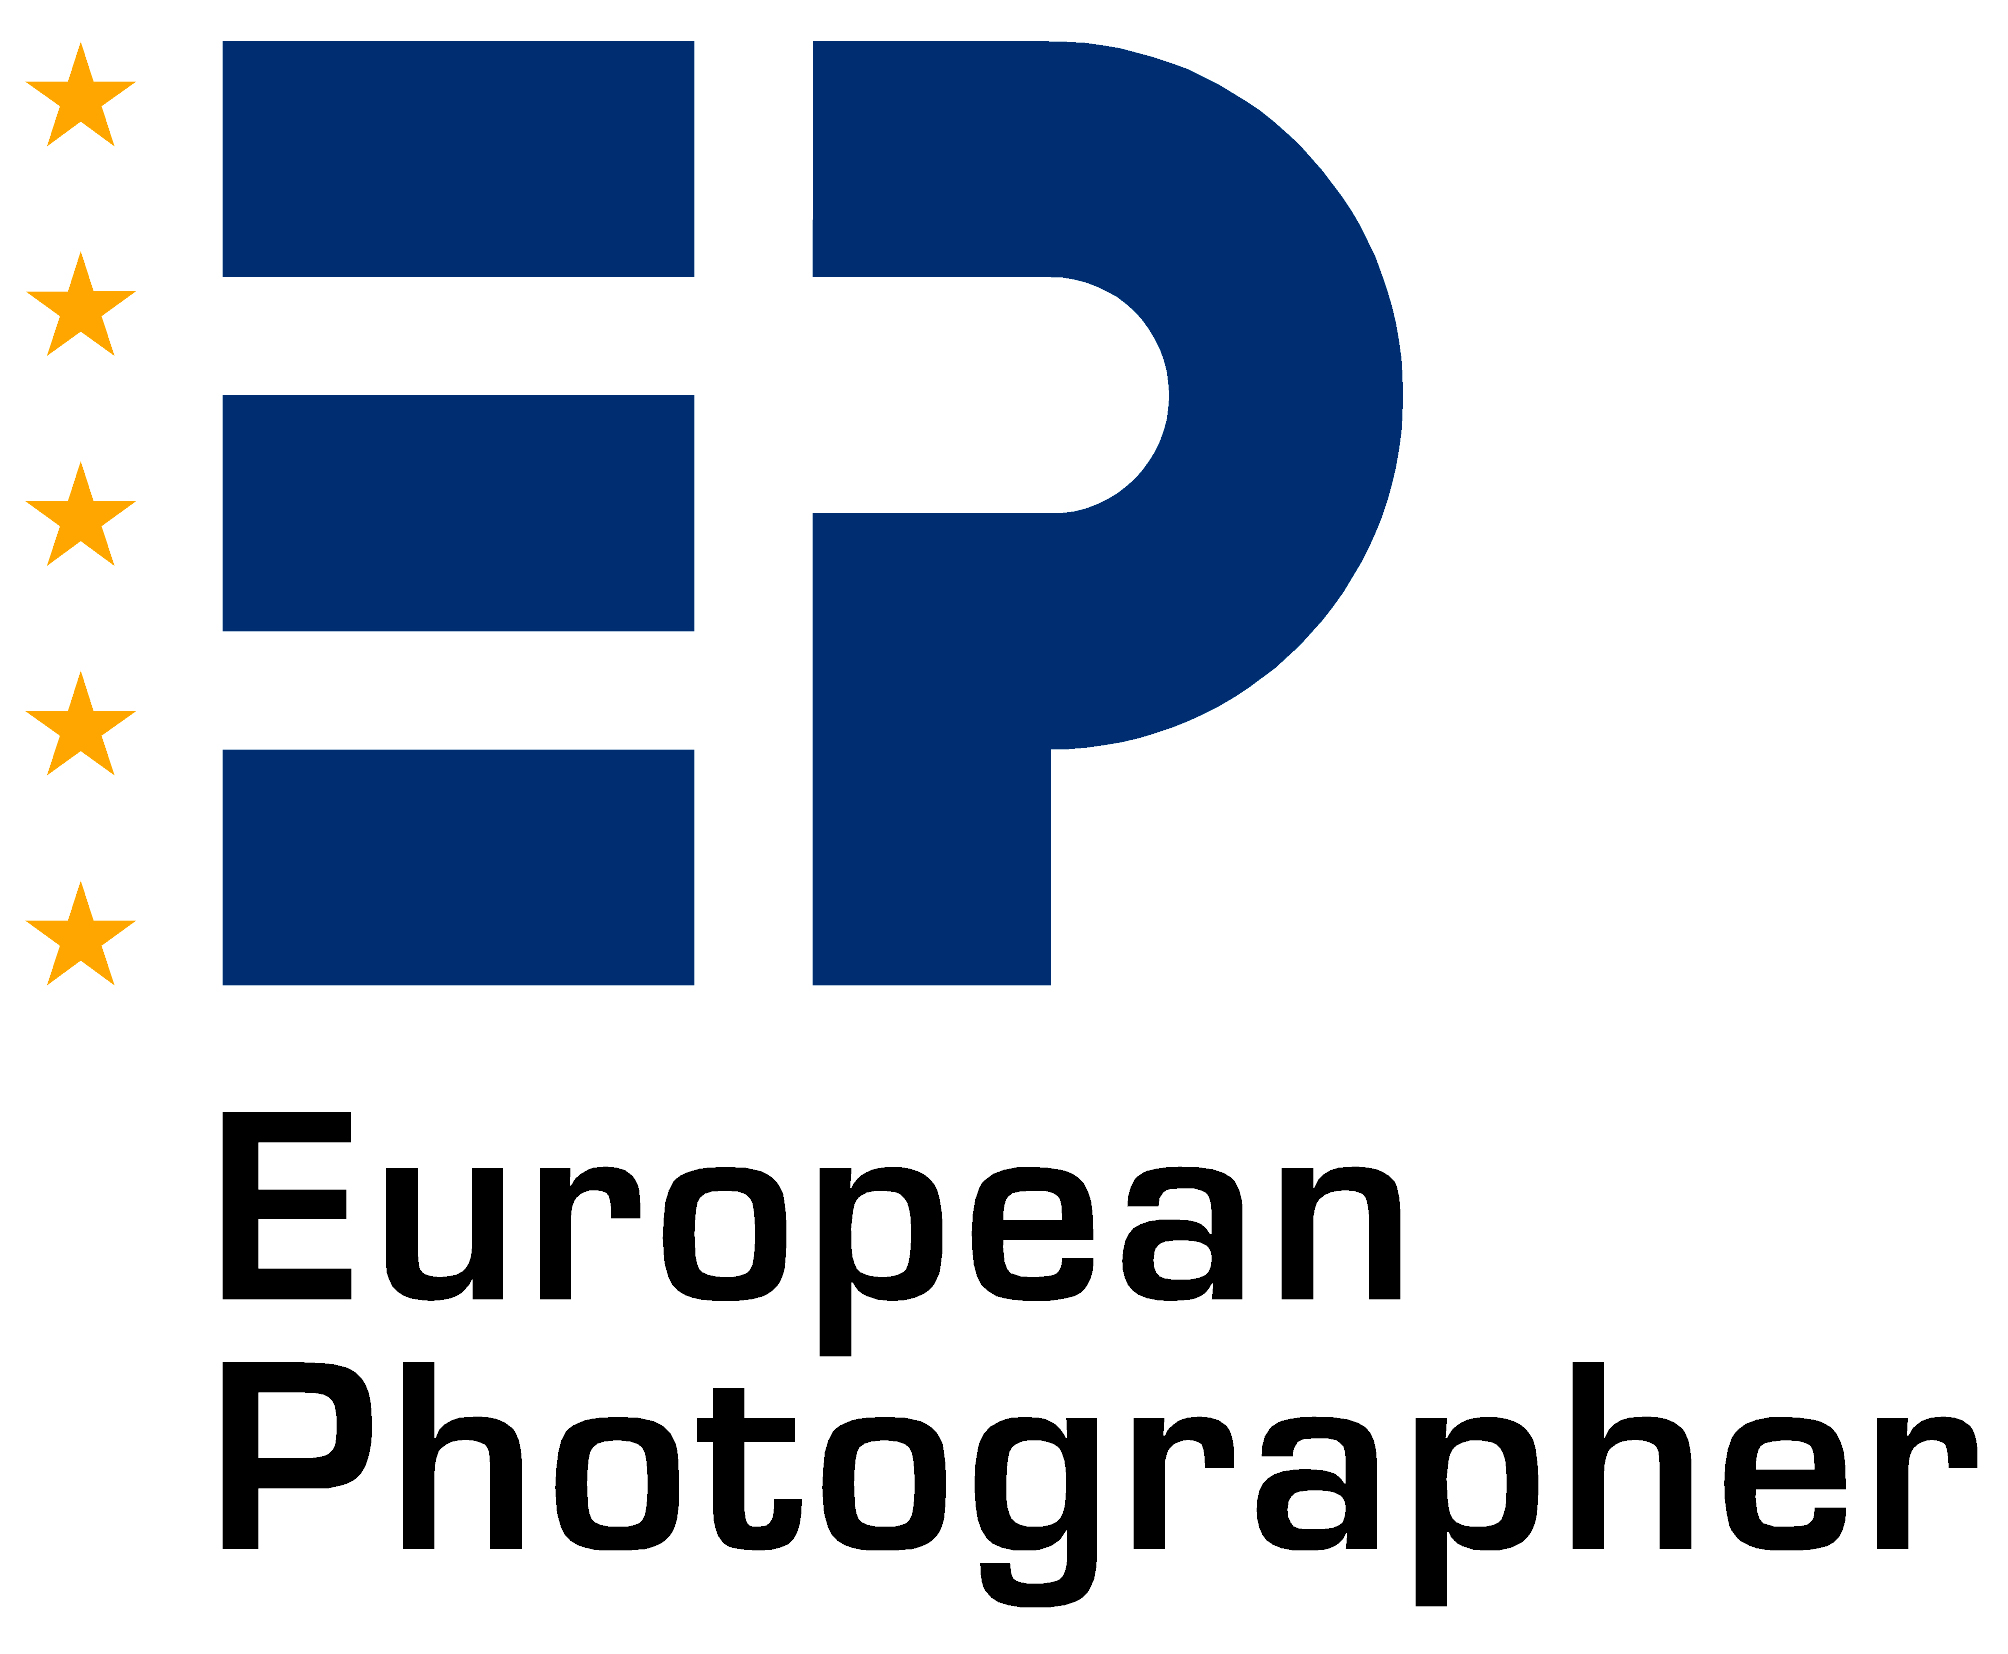 European Photographer Qualification